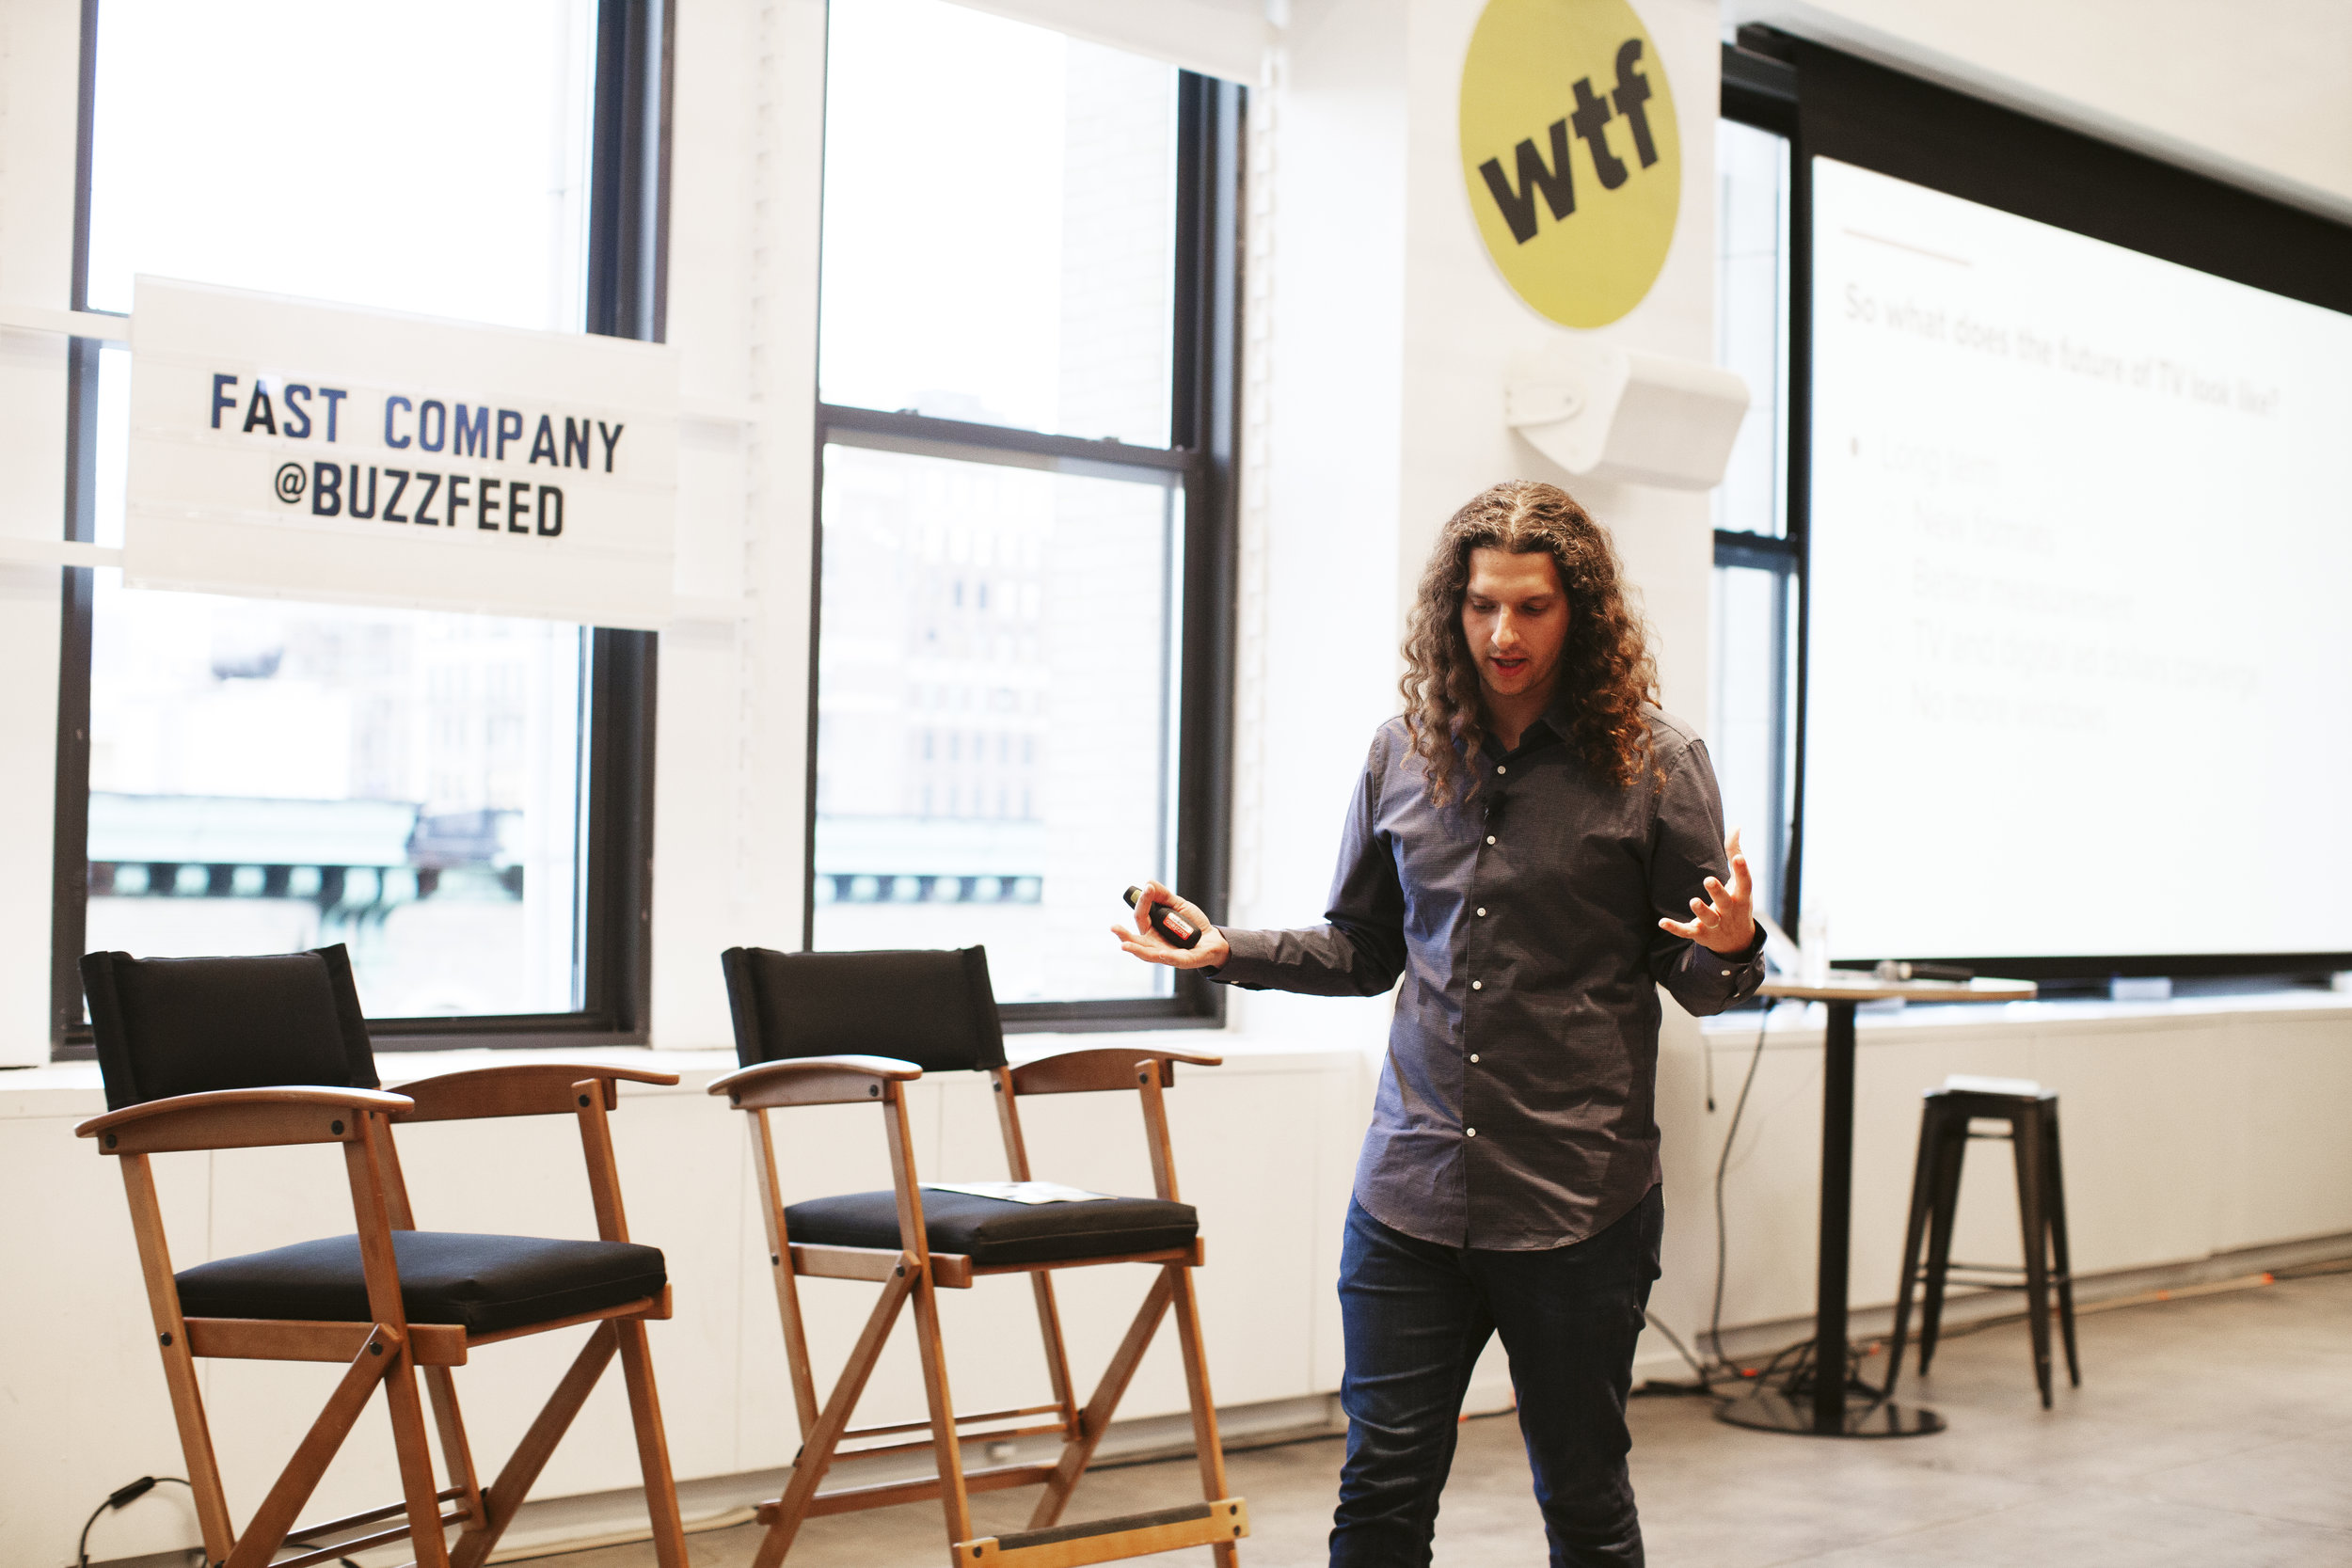 Buzzfeed for Fast Company